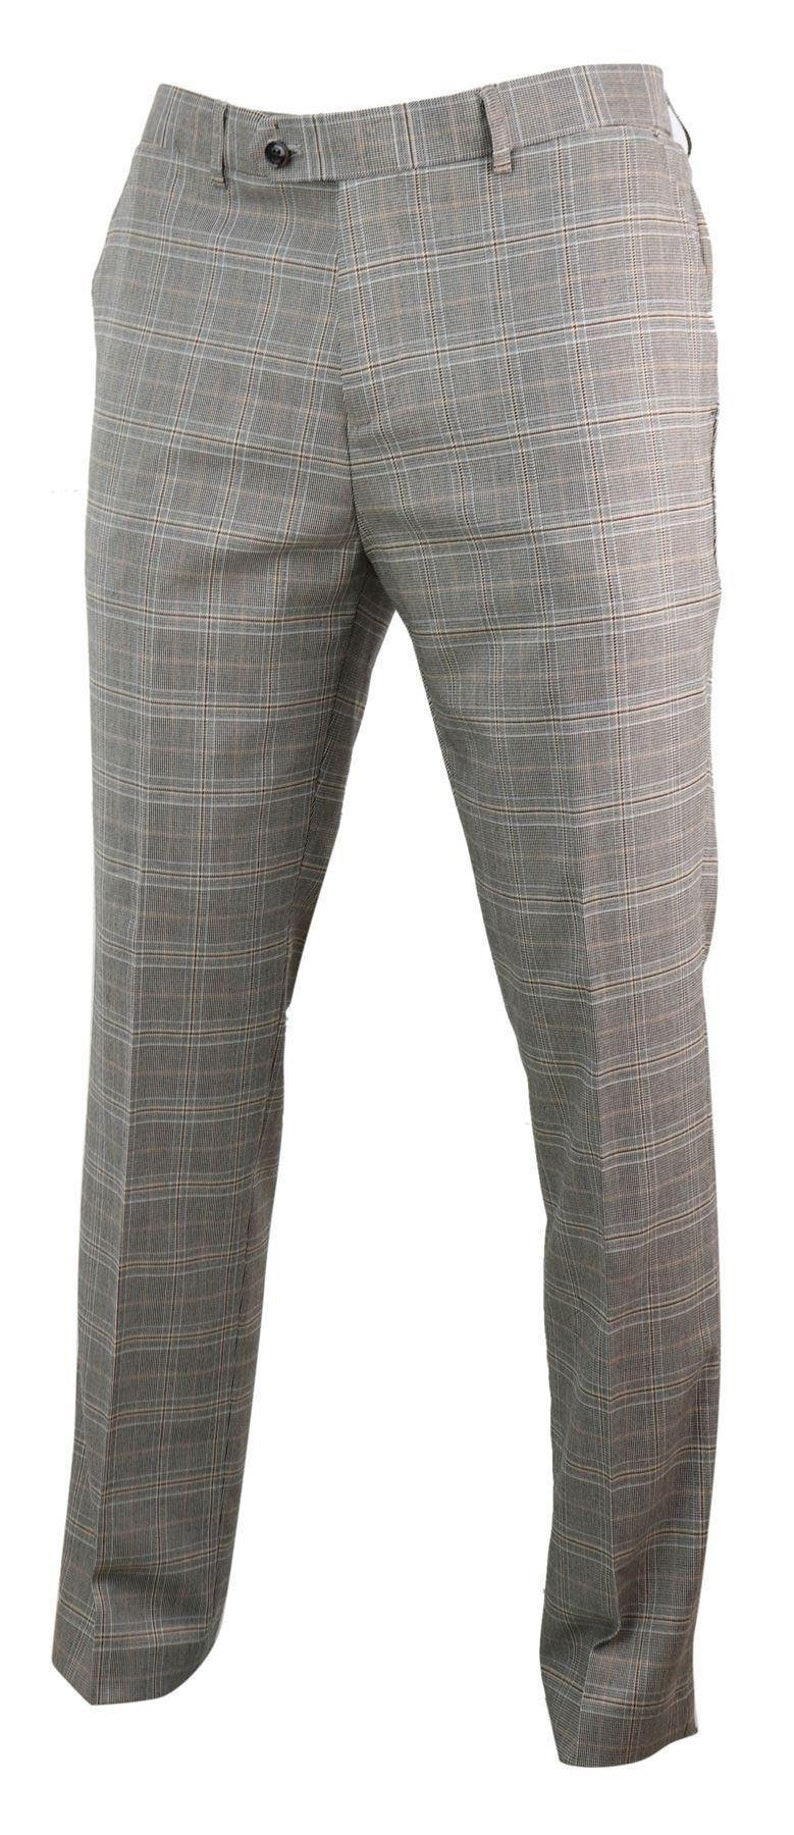 1920s Men's Pants History: Oxford Bags, Plus Four Knickers, Overalls     Men check tweed trousers herringbone regular tailored fit 1920s $72.13 AT vintagedancer.com